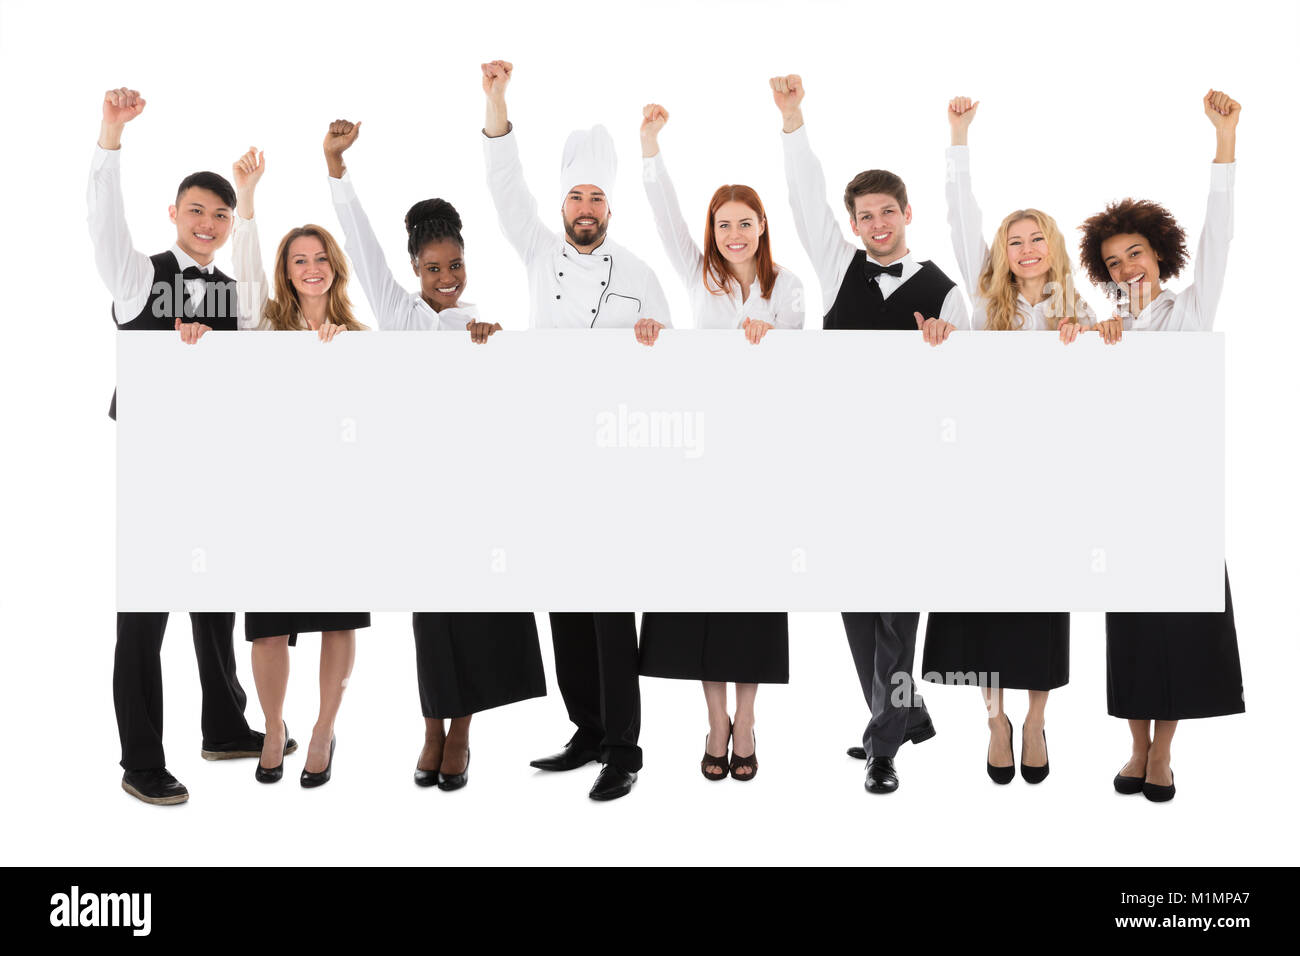 Portrait Of Multiracial Restaurant Staff Holding Billboard Raising Their Arms - Stock Image